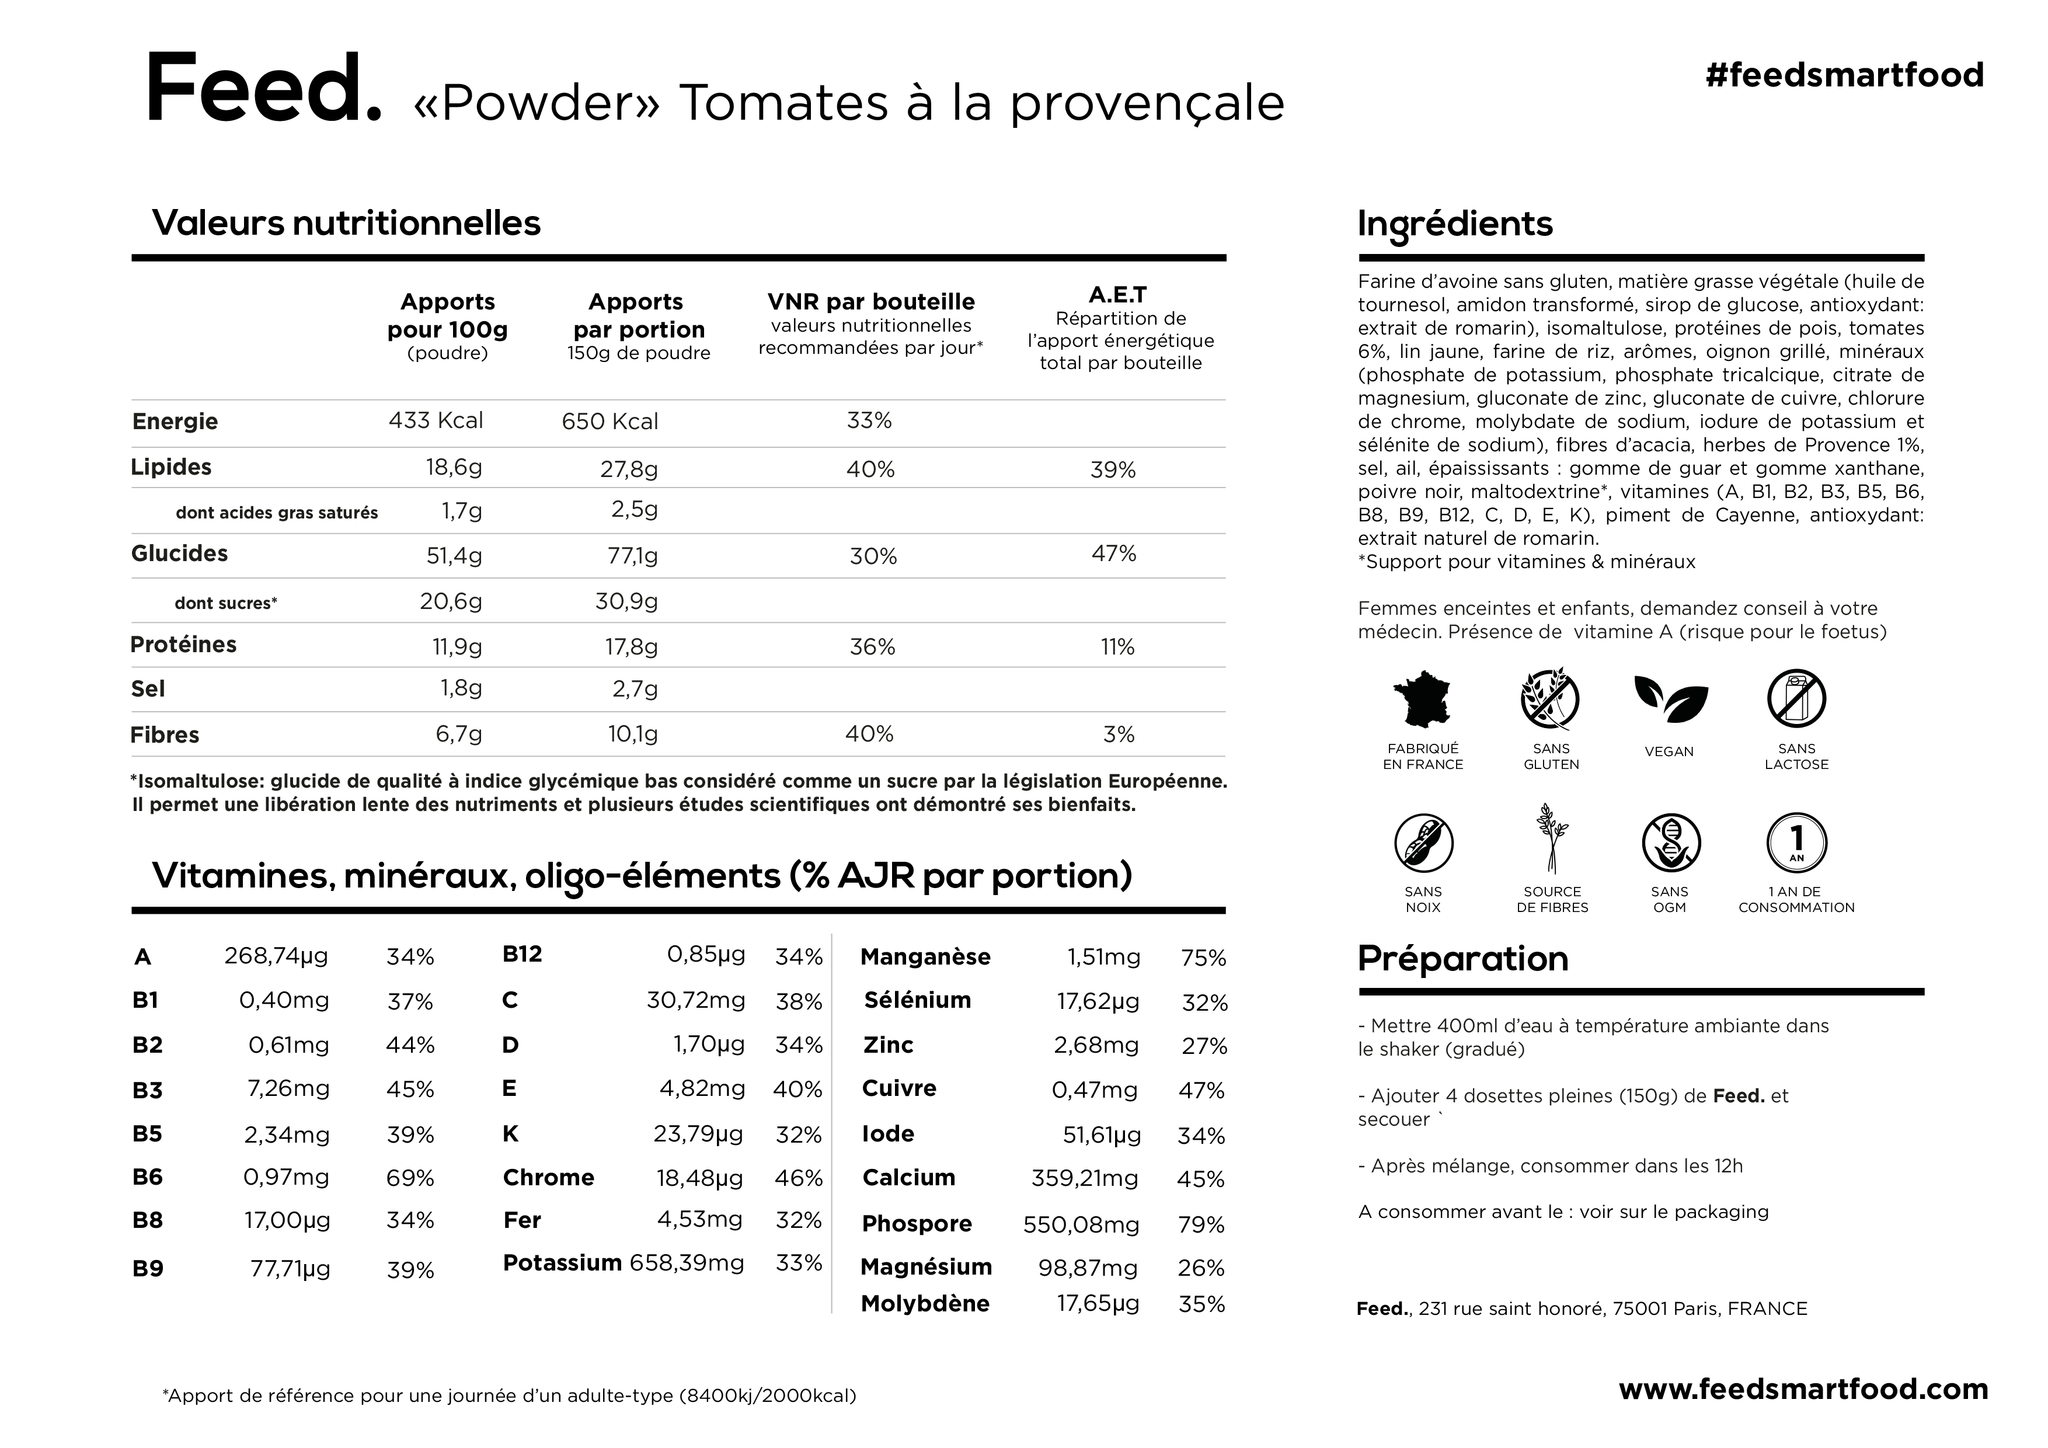 products/feed_tableau_nutritionnel_powder_tomates_a_la_provencale_fr_8e90af9d-23f1-40bf-83bc-cefdf3e9603e.png